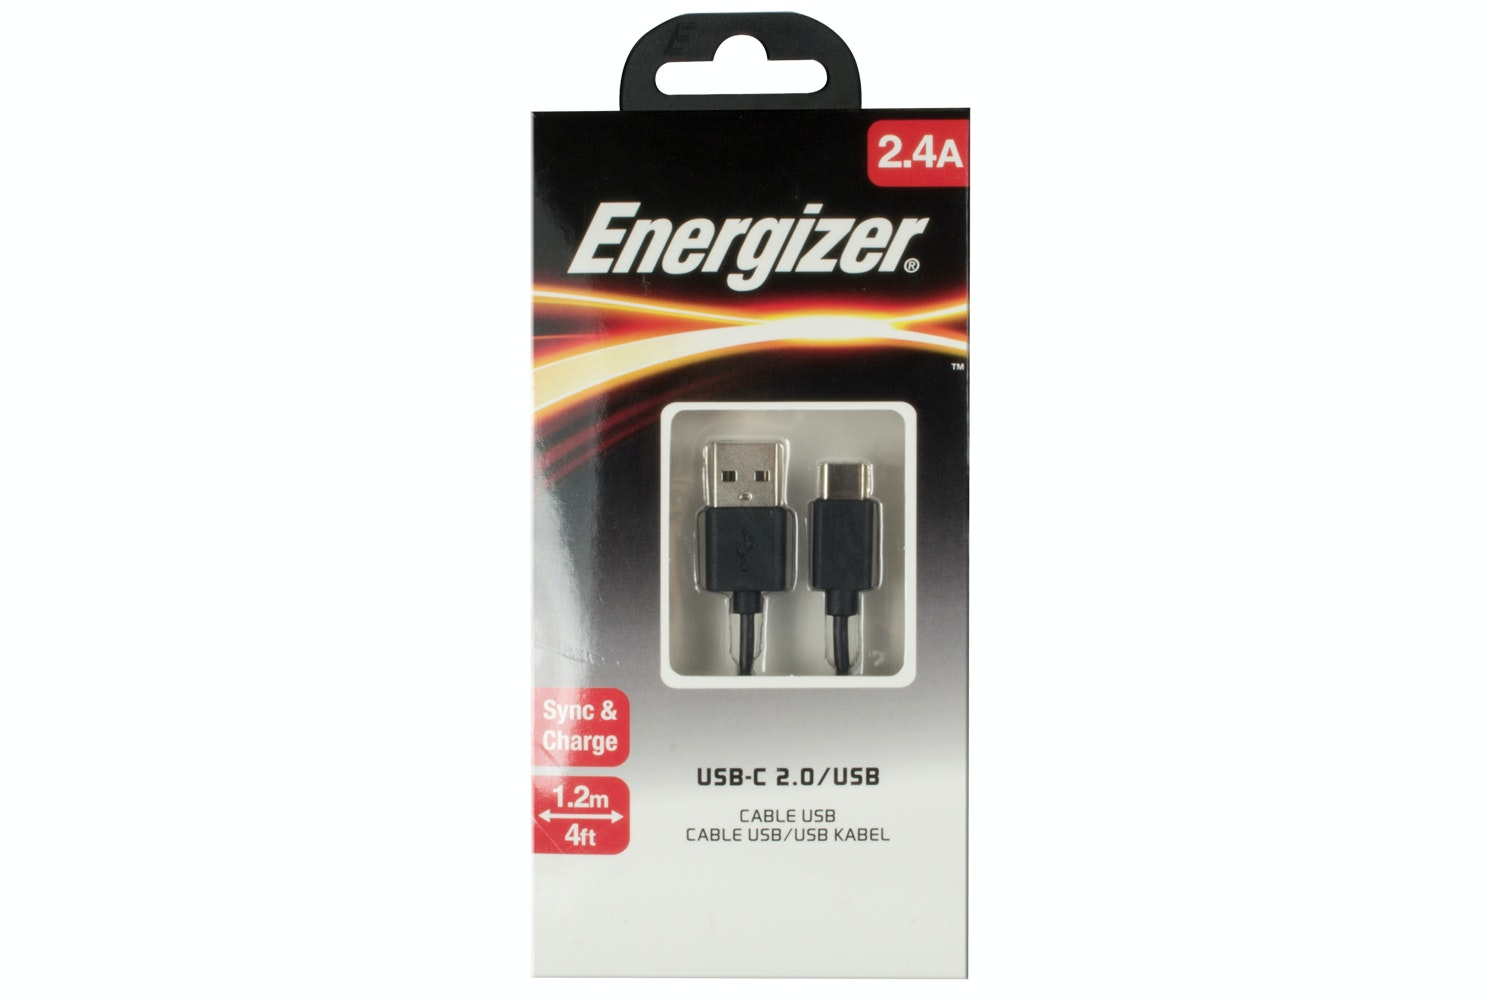 Energizer 1.2m USB Type C To Type A Cable | Black